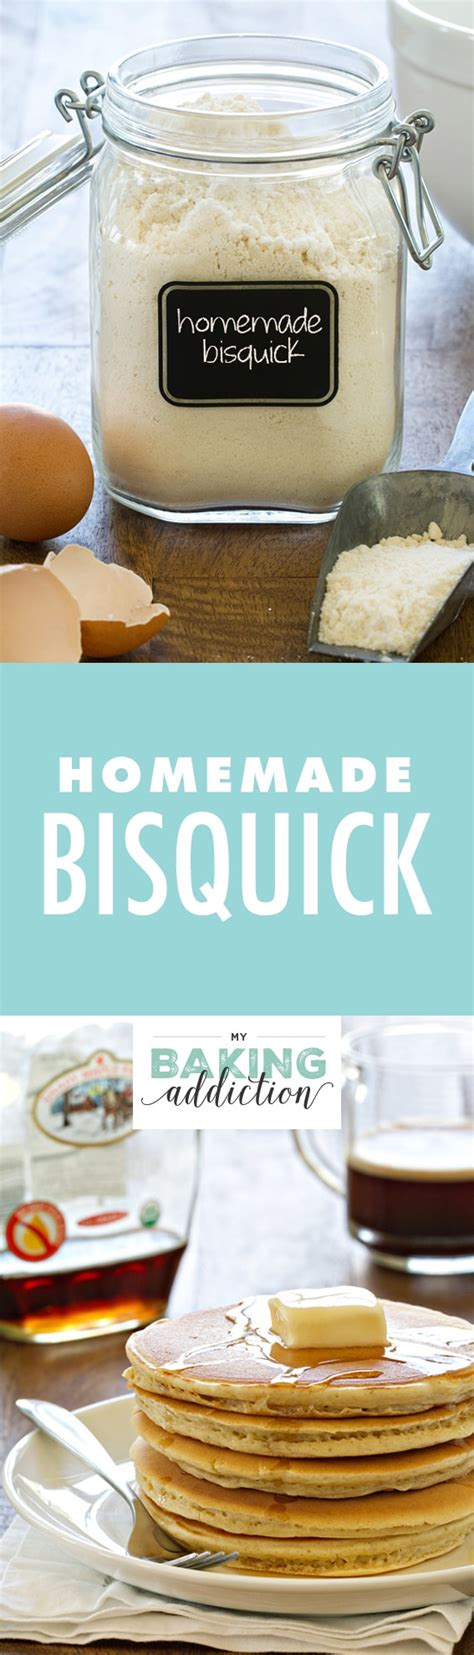 bisquick my baking addiction